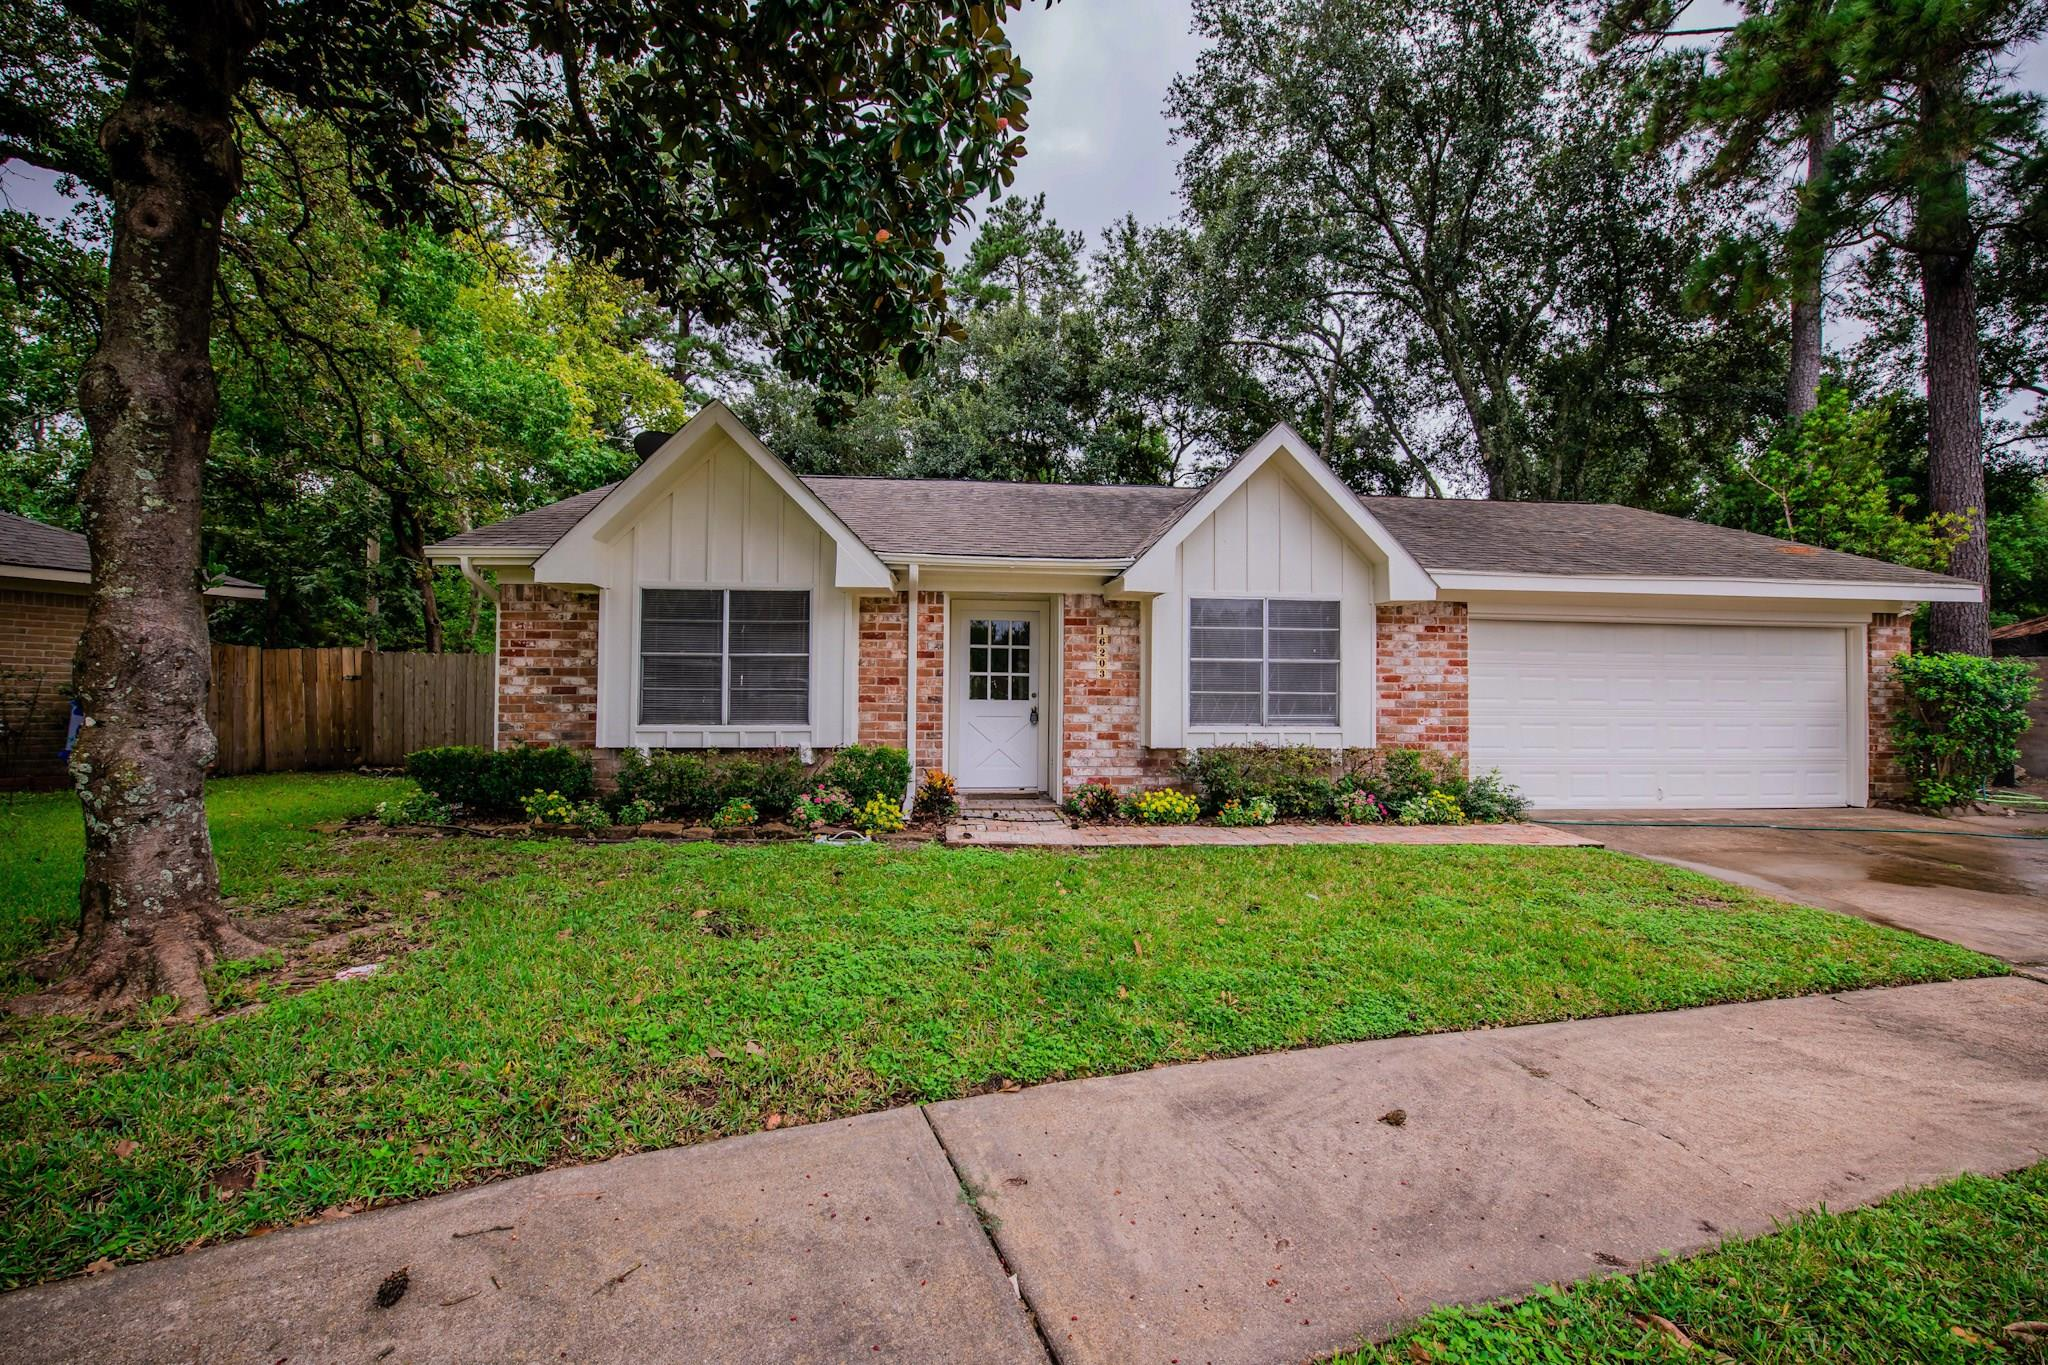 16203 Brinkwood Dr N Property Photo - North Houston, TX real estate listing